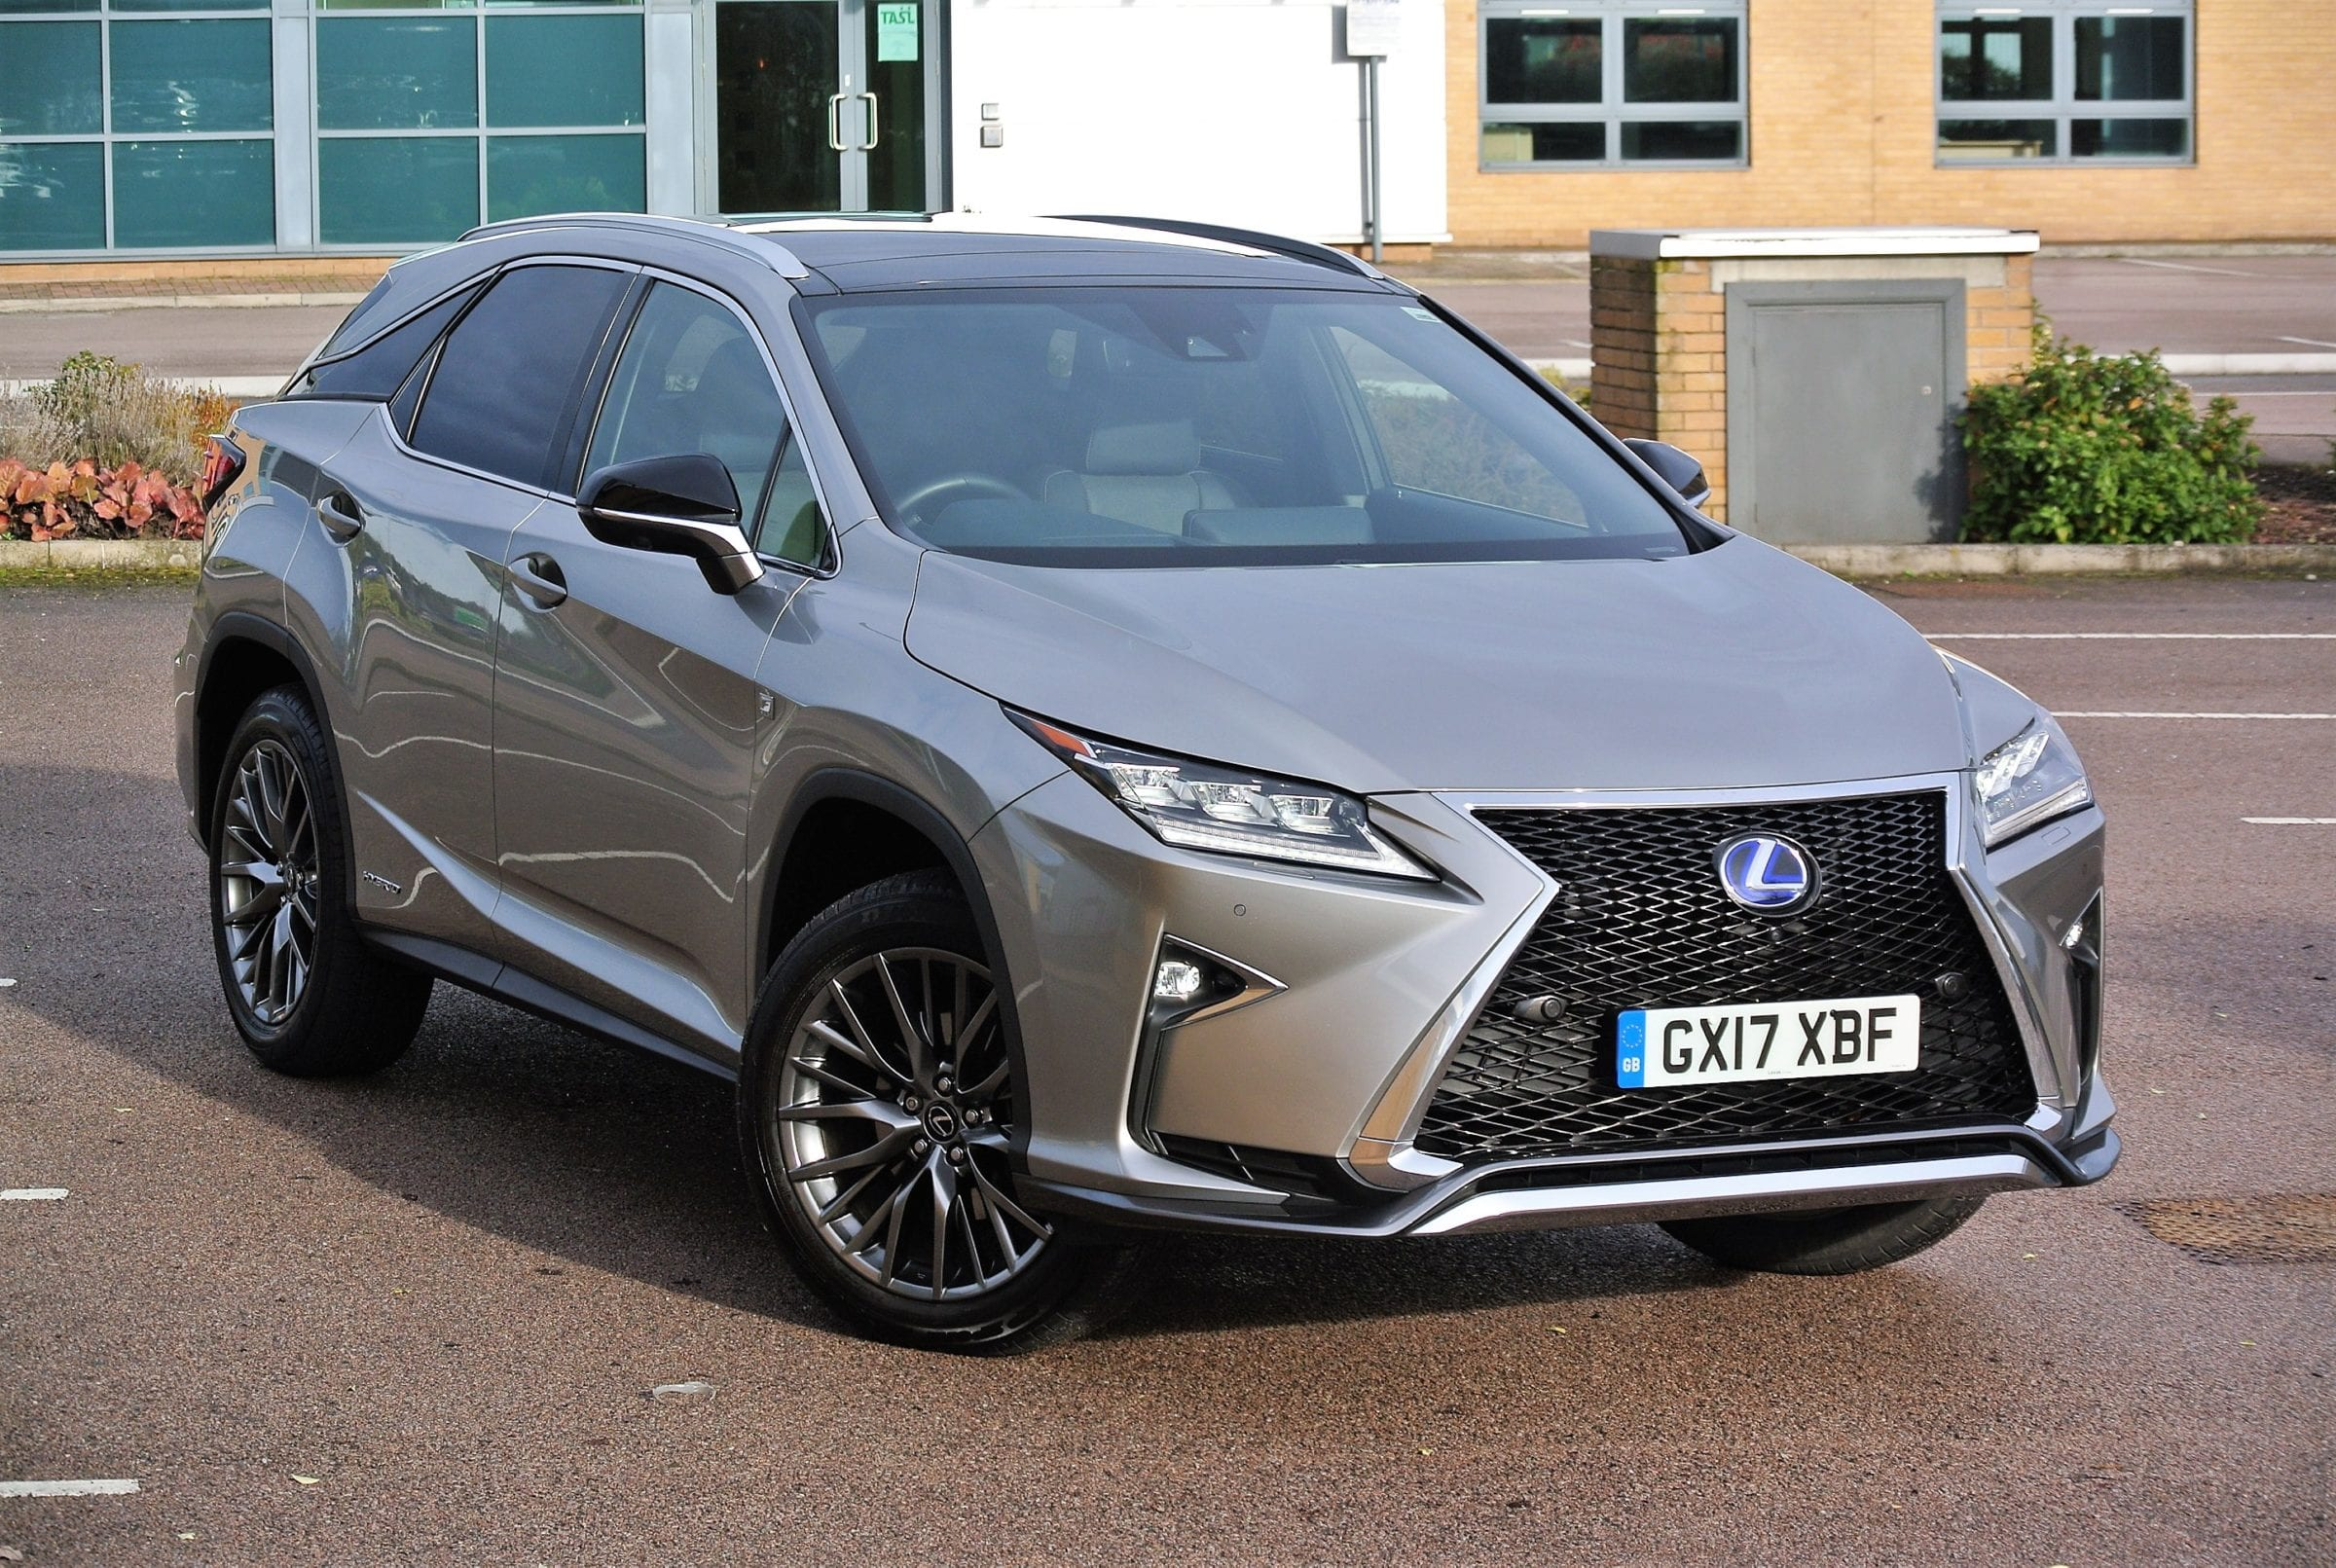 price road hybrid tests the lexus motoring courier from sharp style fp lifestyle